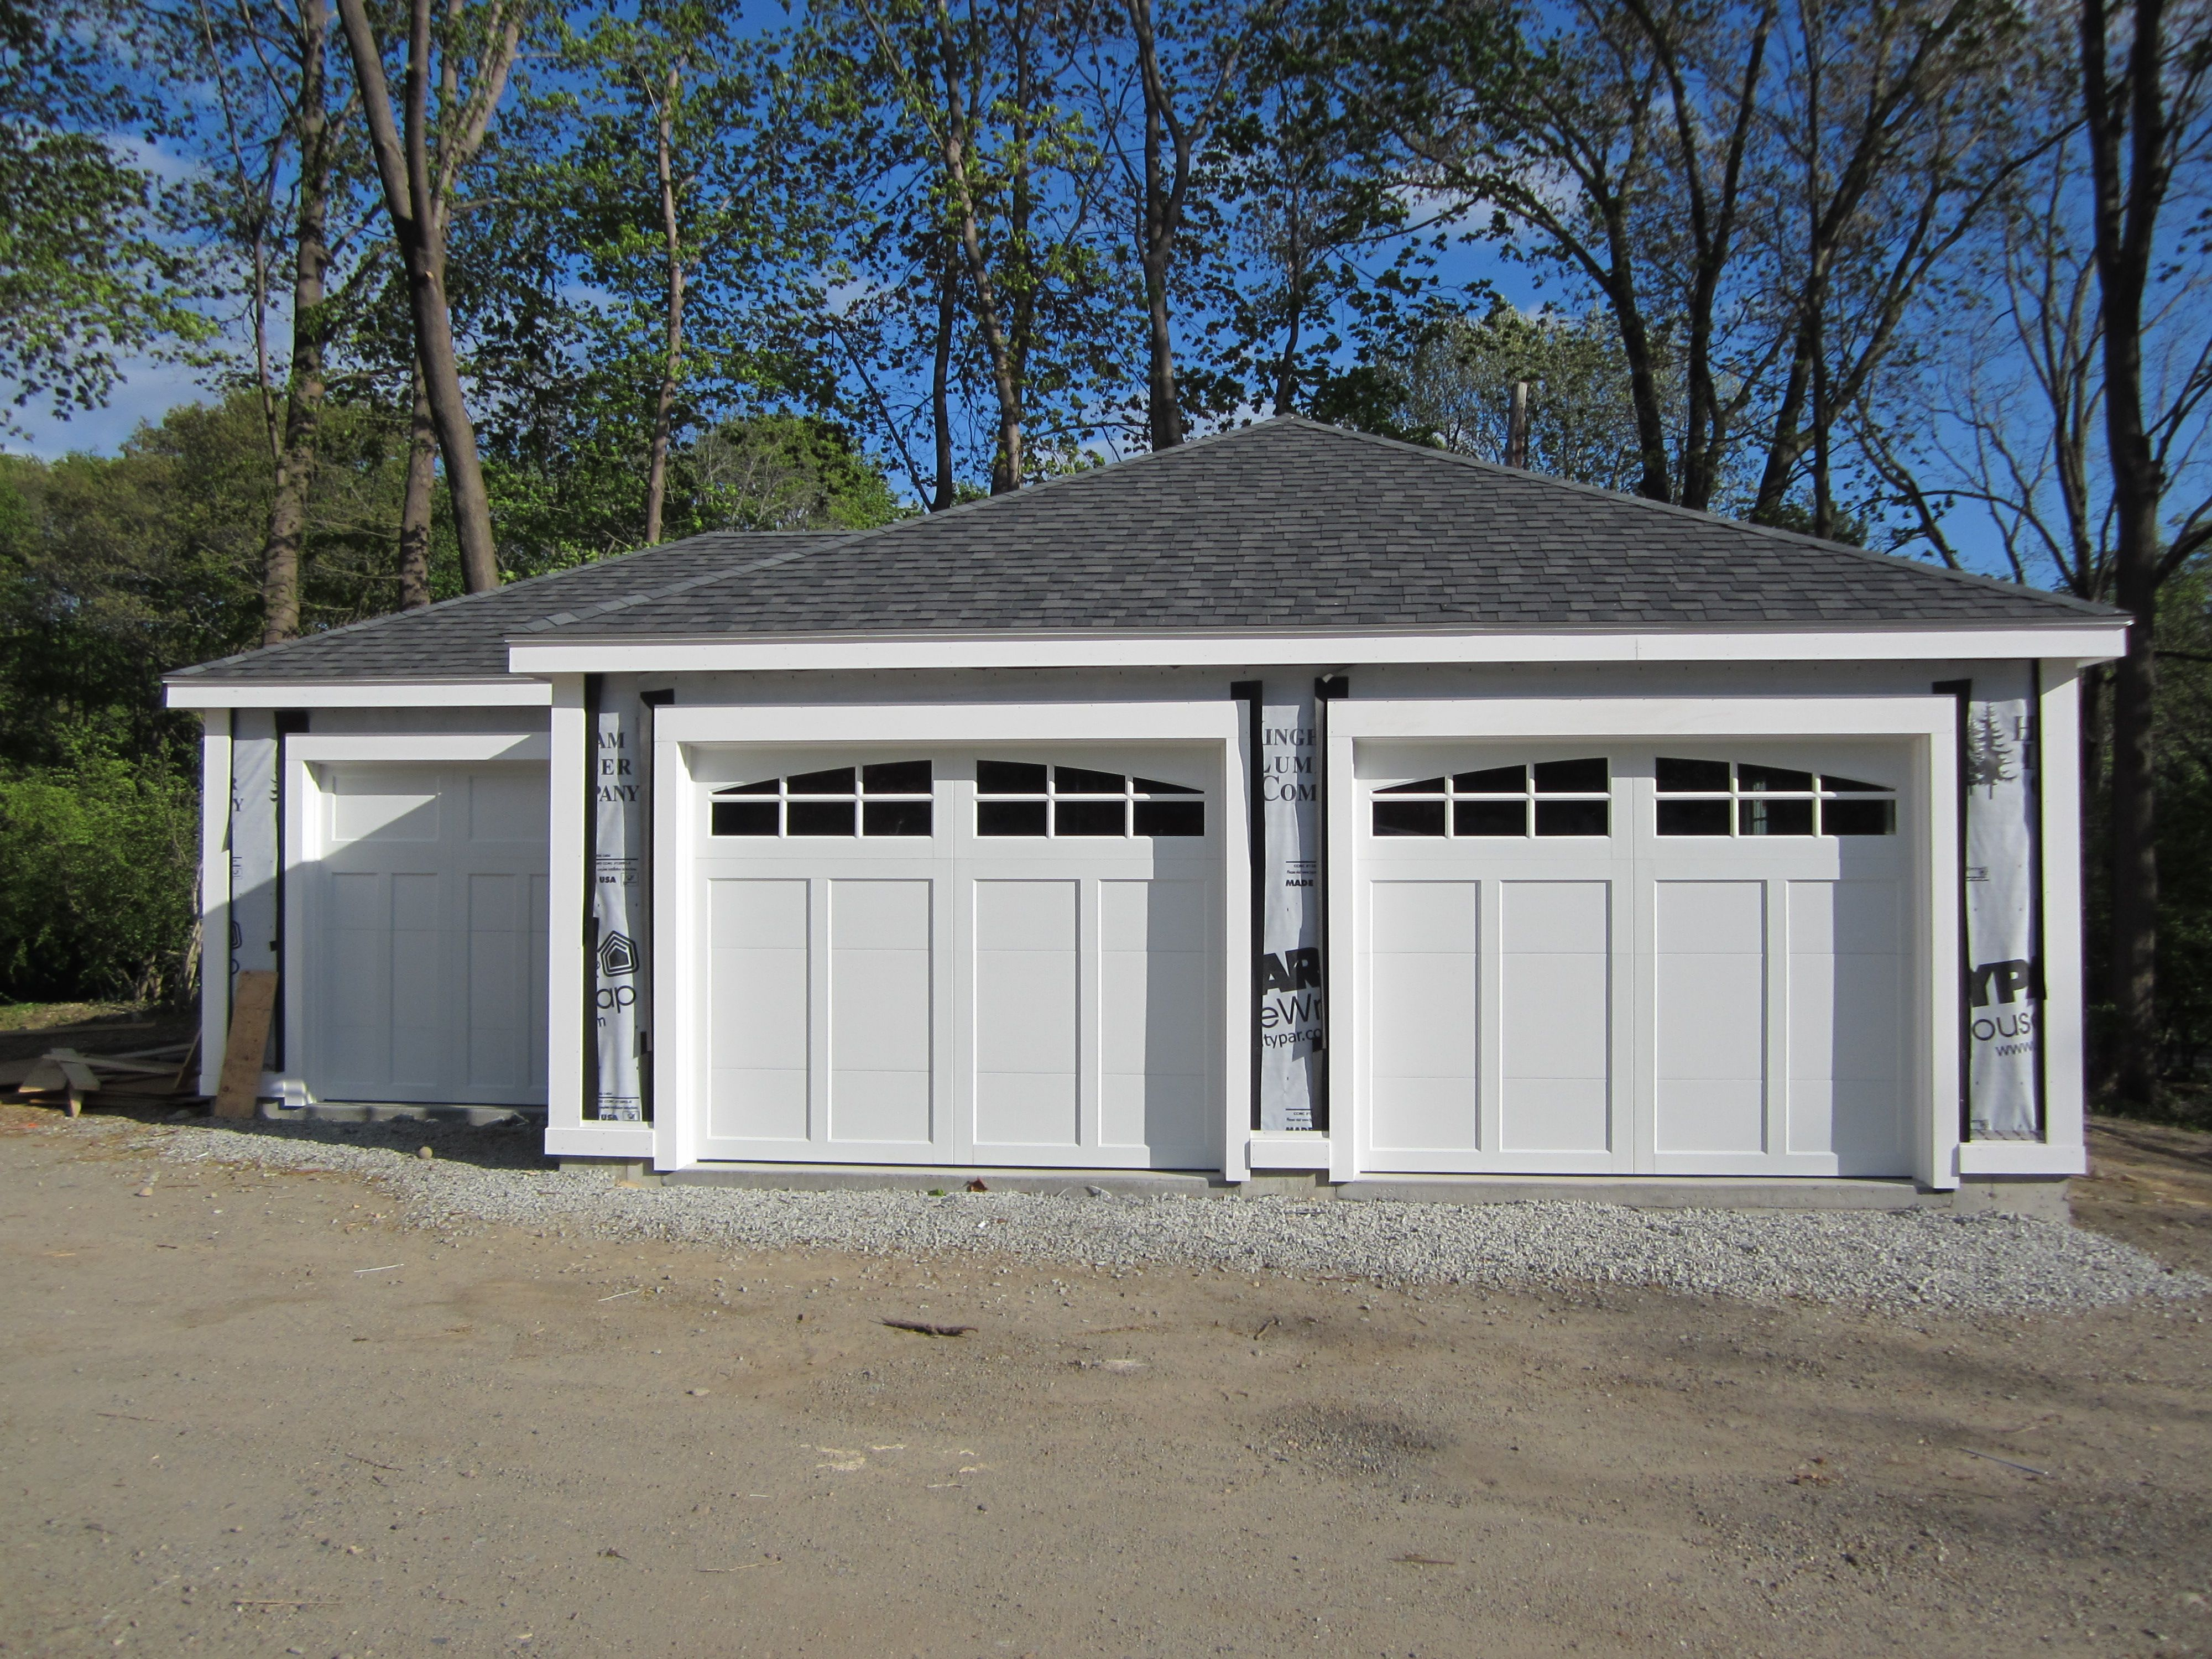 Garage doors carriage house garage doors carriage style garage doors - Haas American Tradition Model 921 Steel Carriage House Style Garage Doors In White With Arch 6